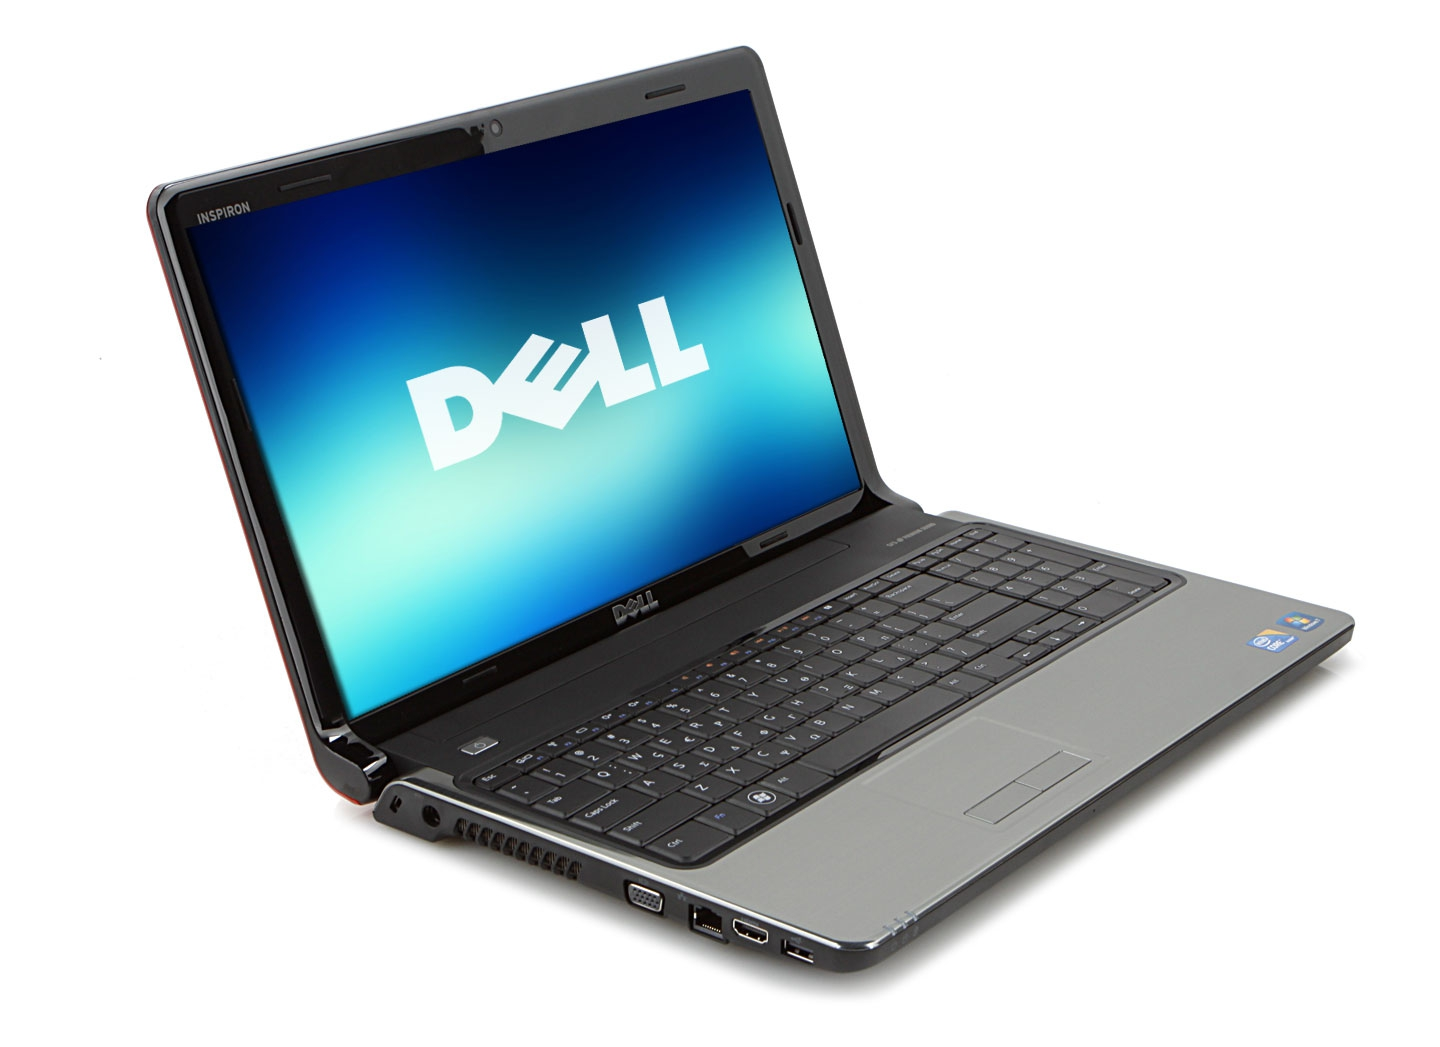 Dell inspiron 1564 hard drive replacement ifixit repair guide.